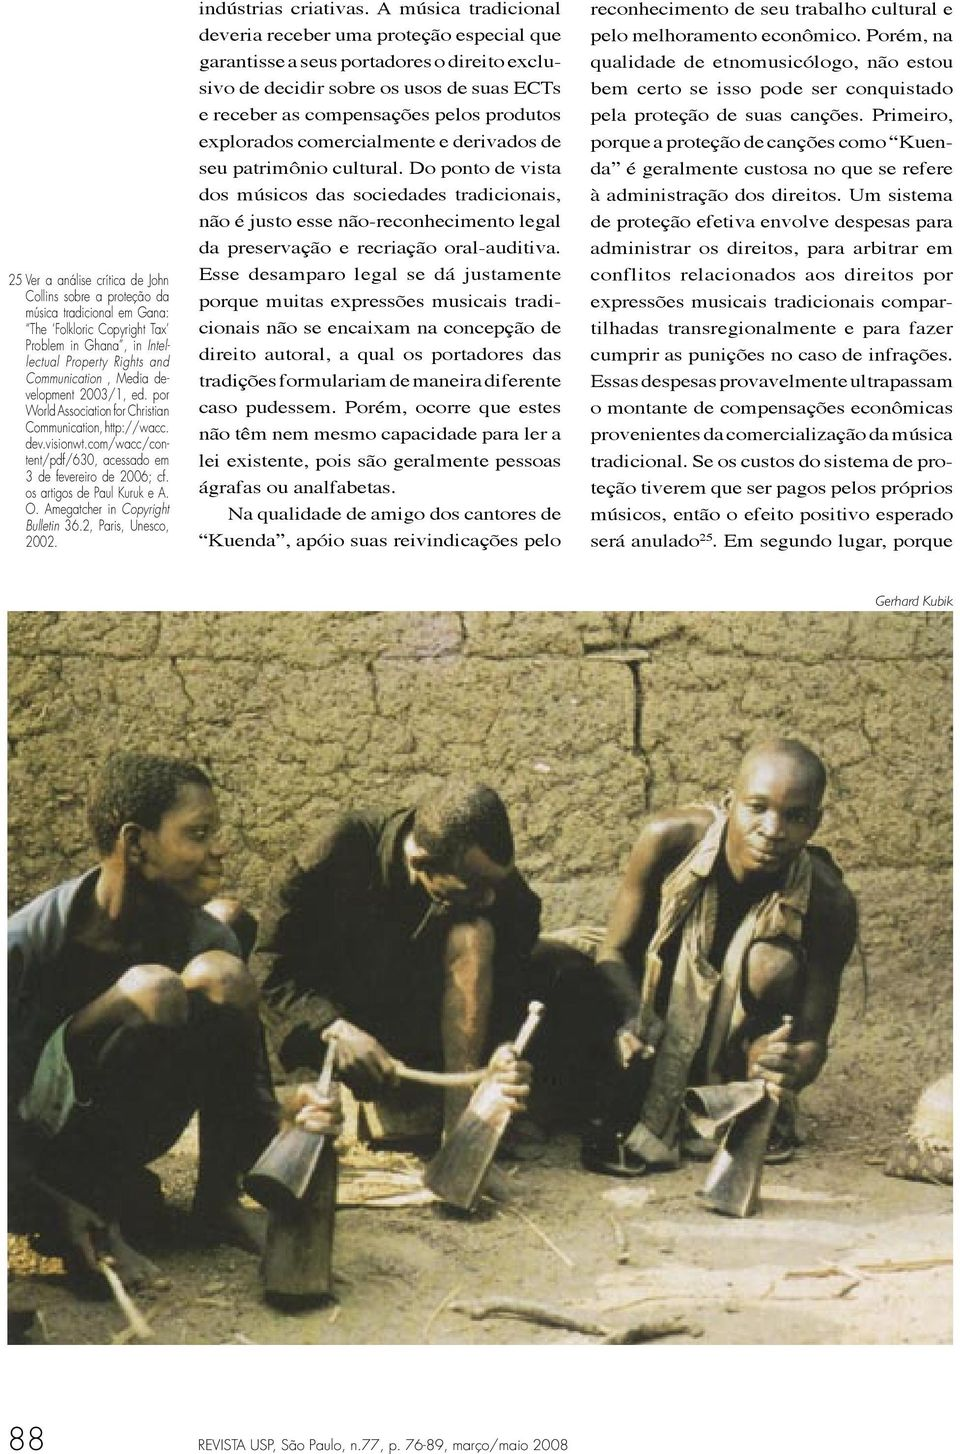 Amegatcher in Copyright Bulletin 36.2, Paris, Unesco, 2002. indústrias criativas.